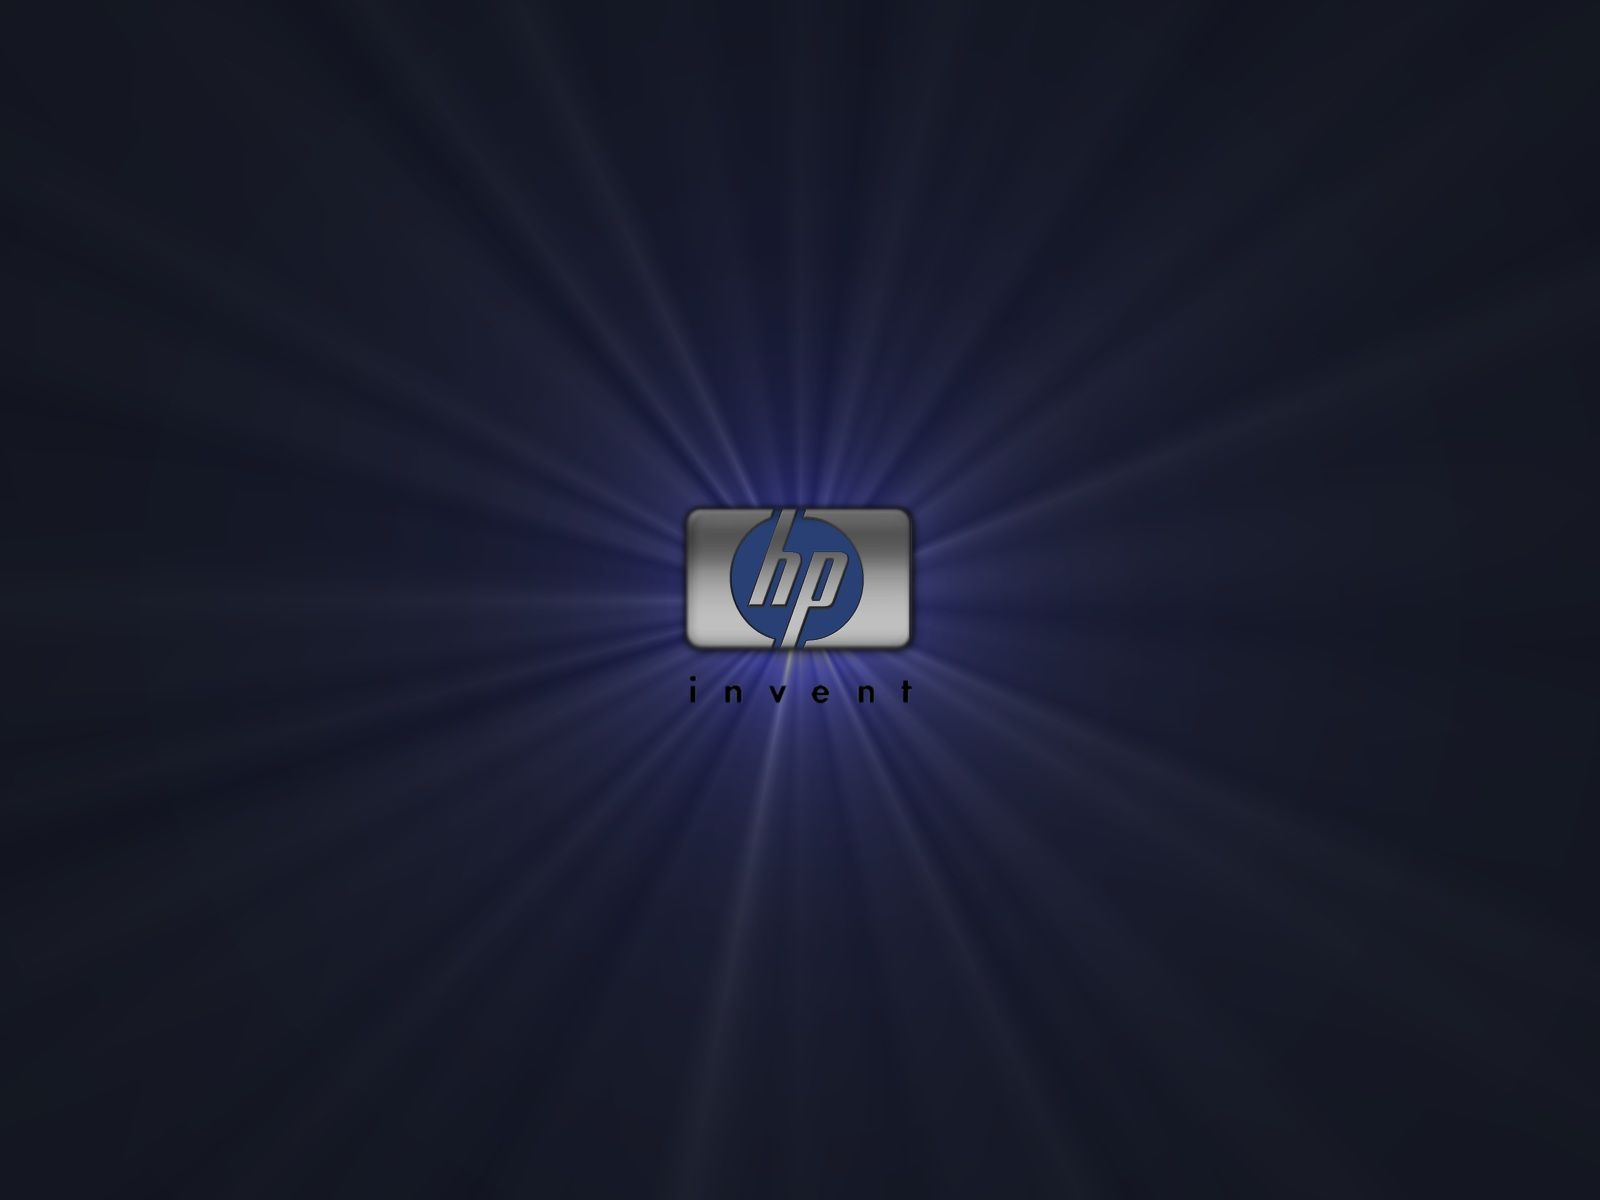 HP Windows 8 Desktop Backgrounds